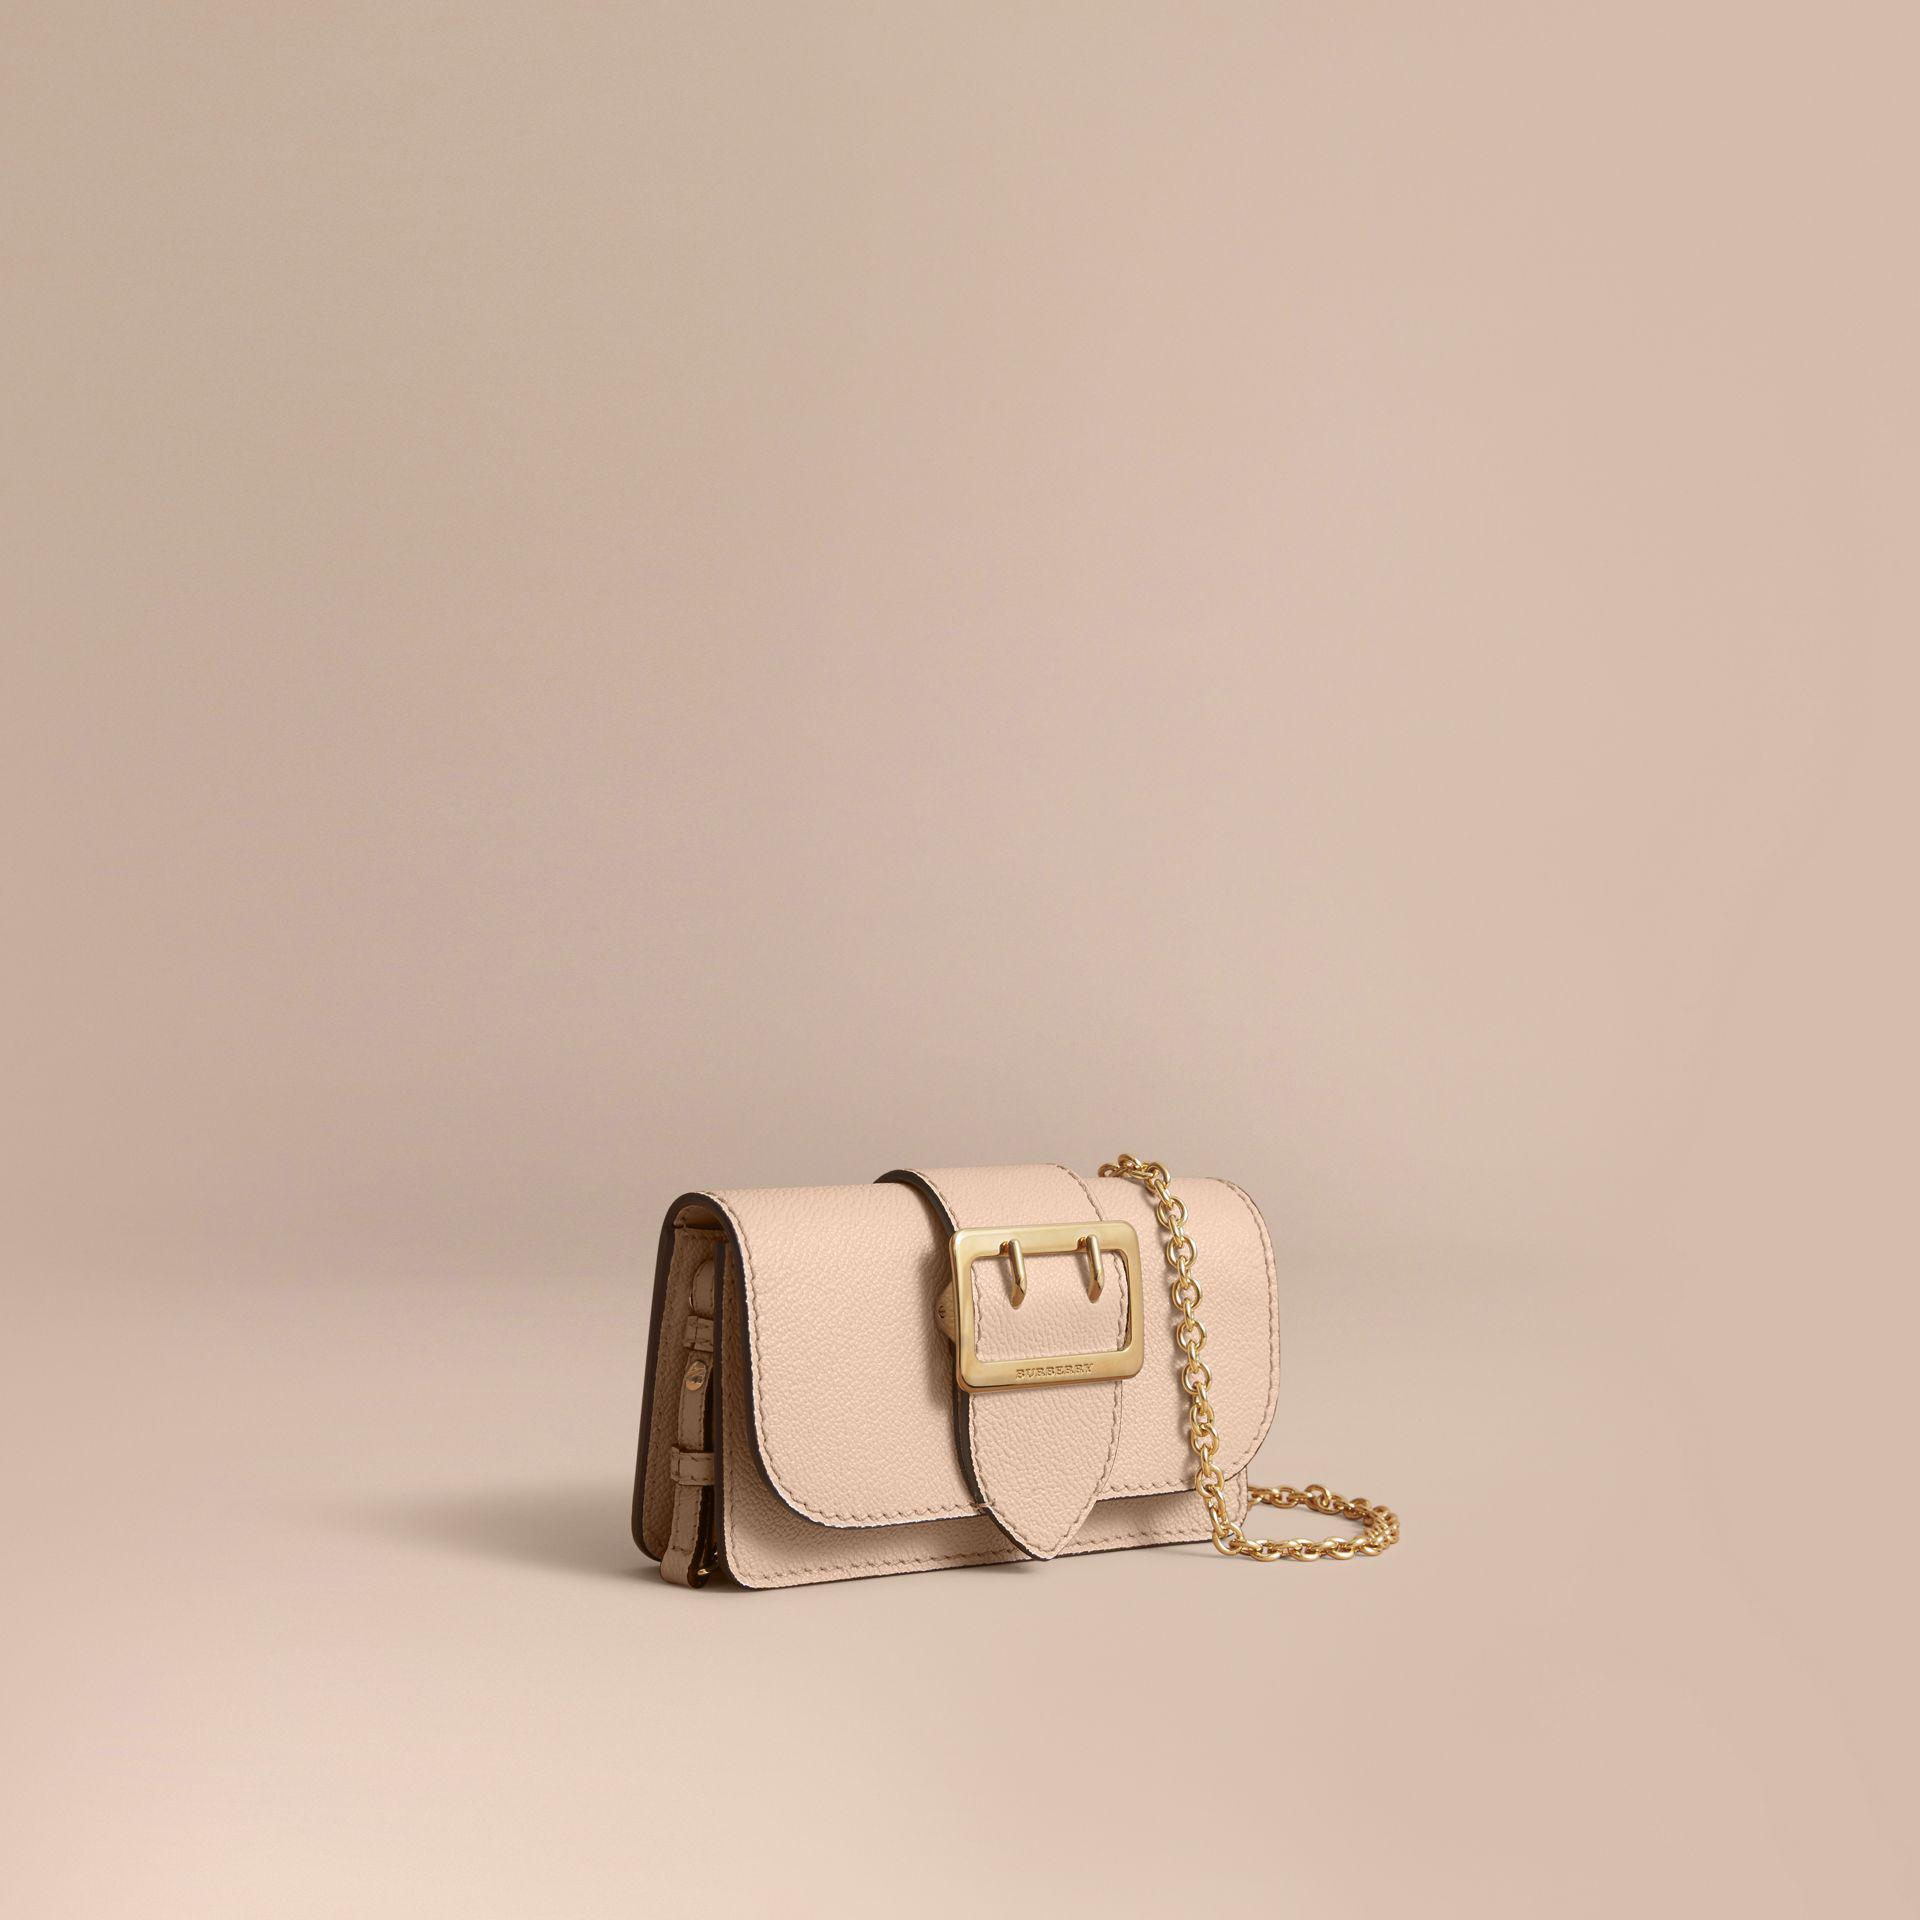 28de1127fcc Burberry The Mini Buckle Bag In Grainy Leather Limestone - Lyst